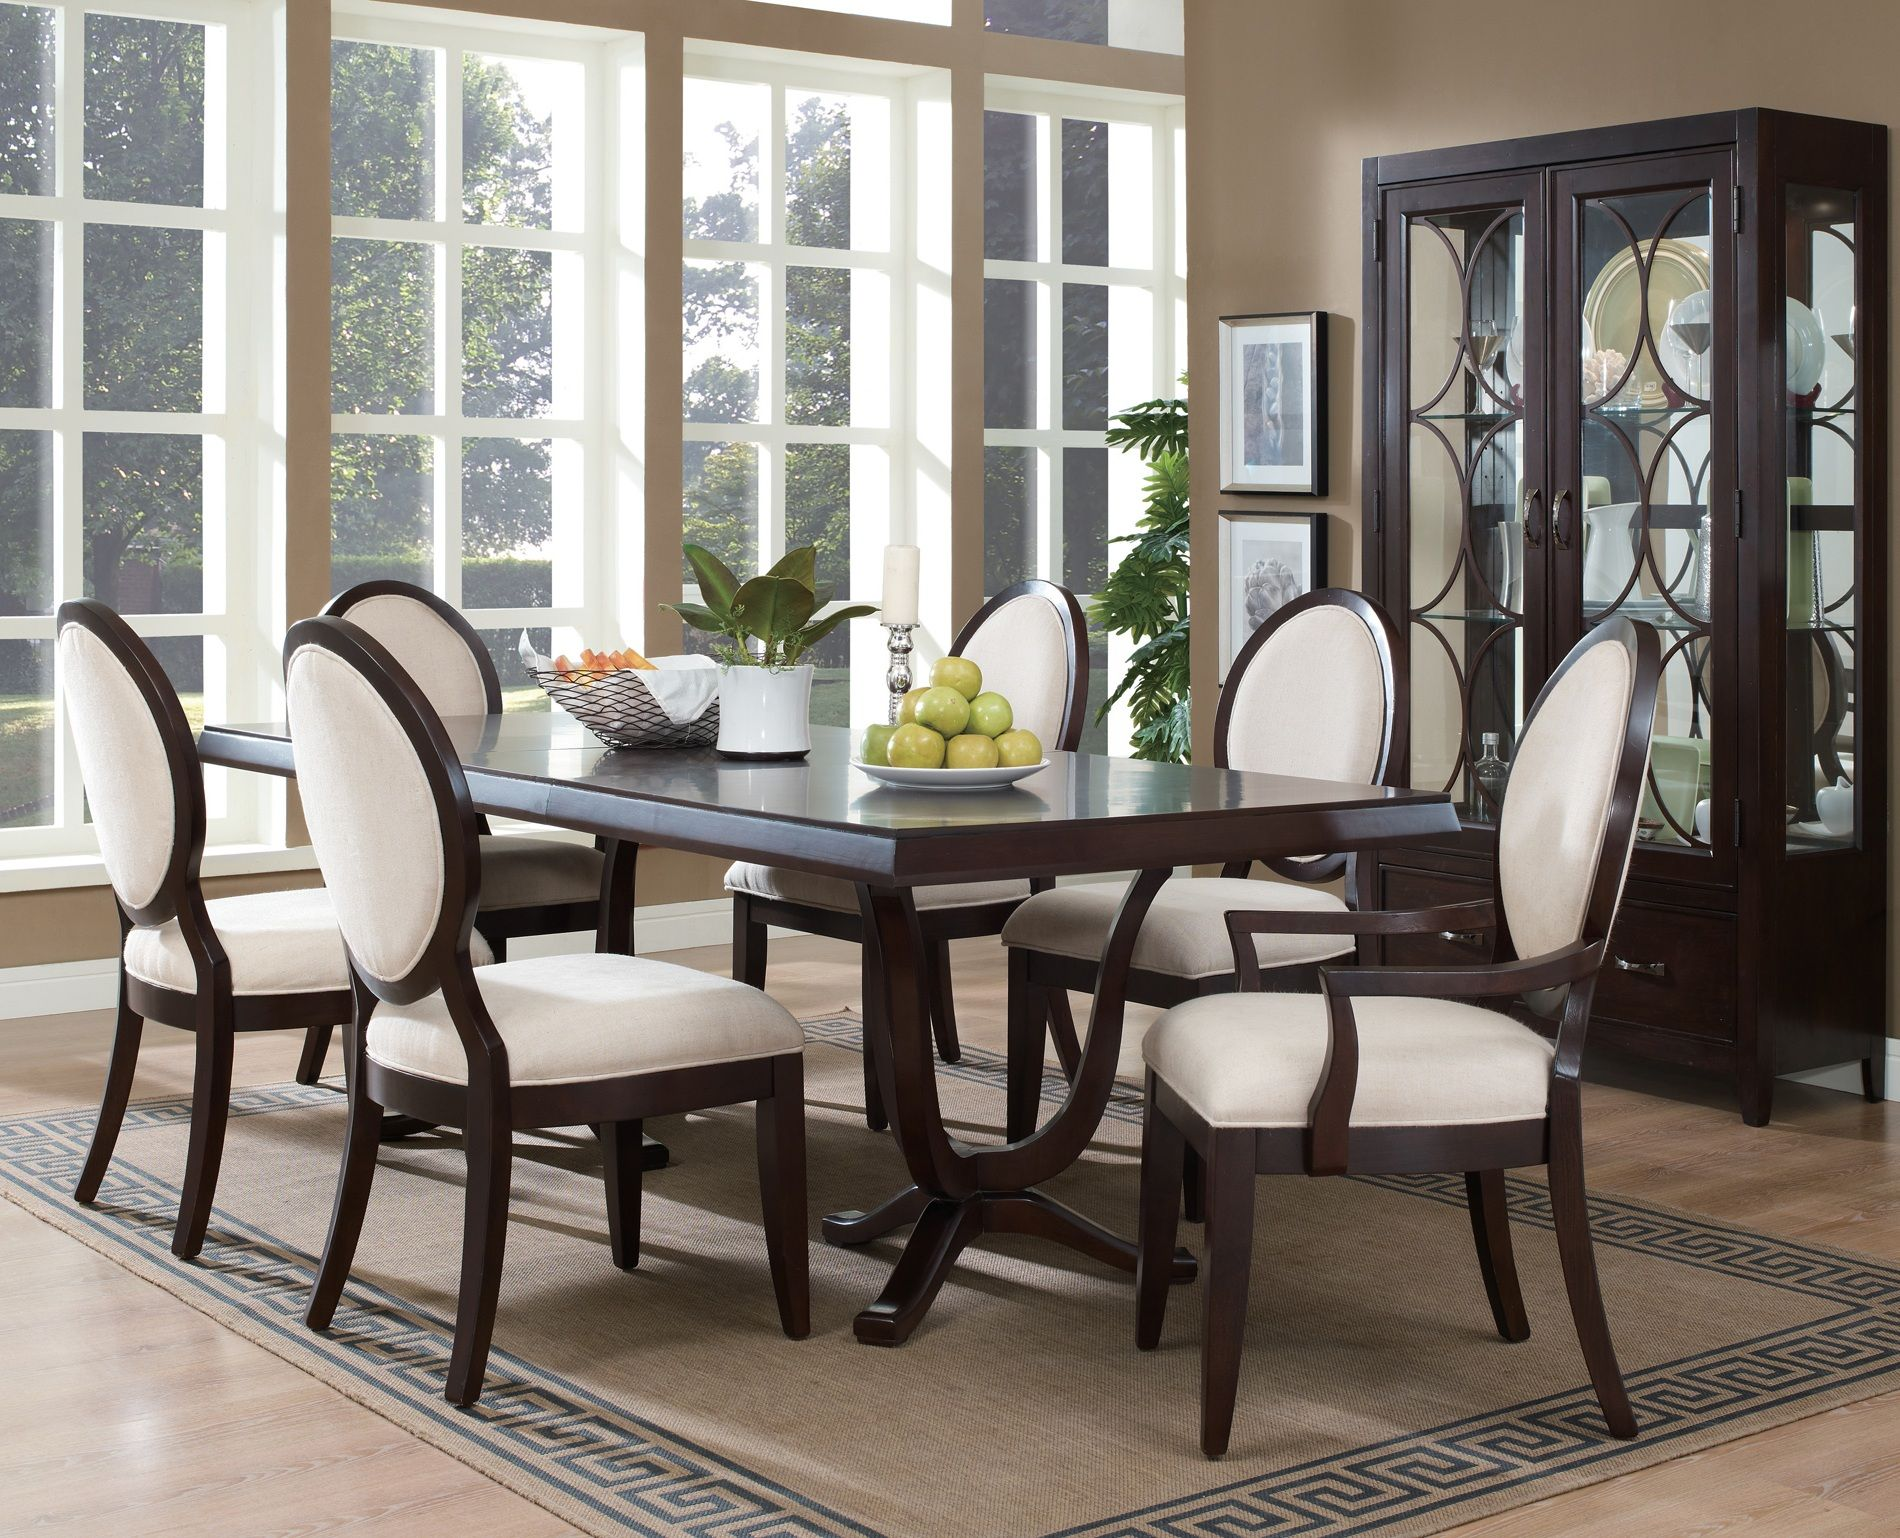 Fascinating Dining Room Set Idea with Two Tone Upholstered Chairs ...